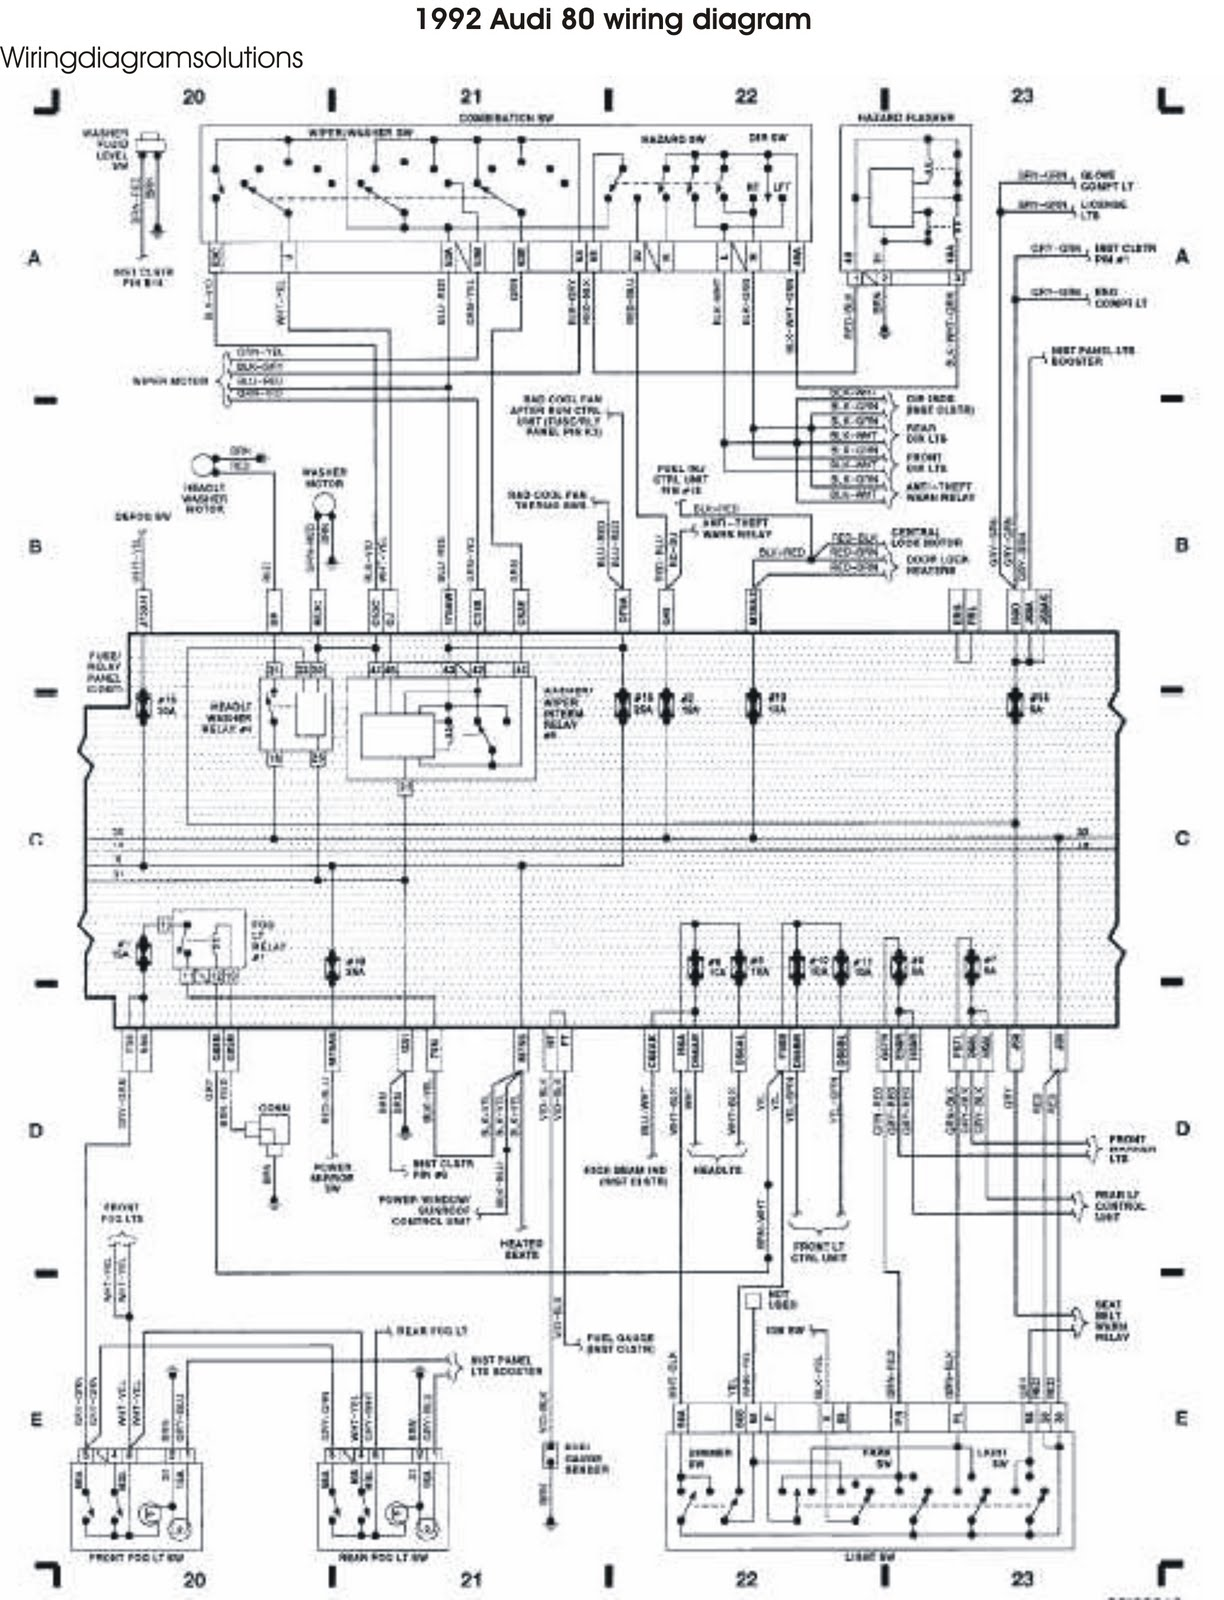 The Audi 80 Wiring Diagram